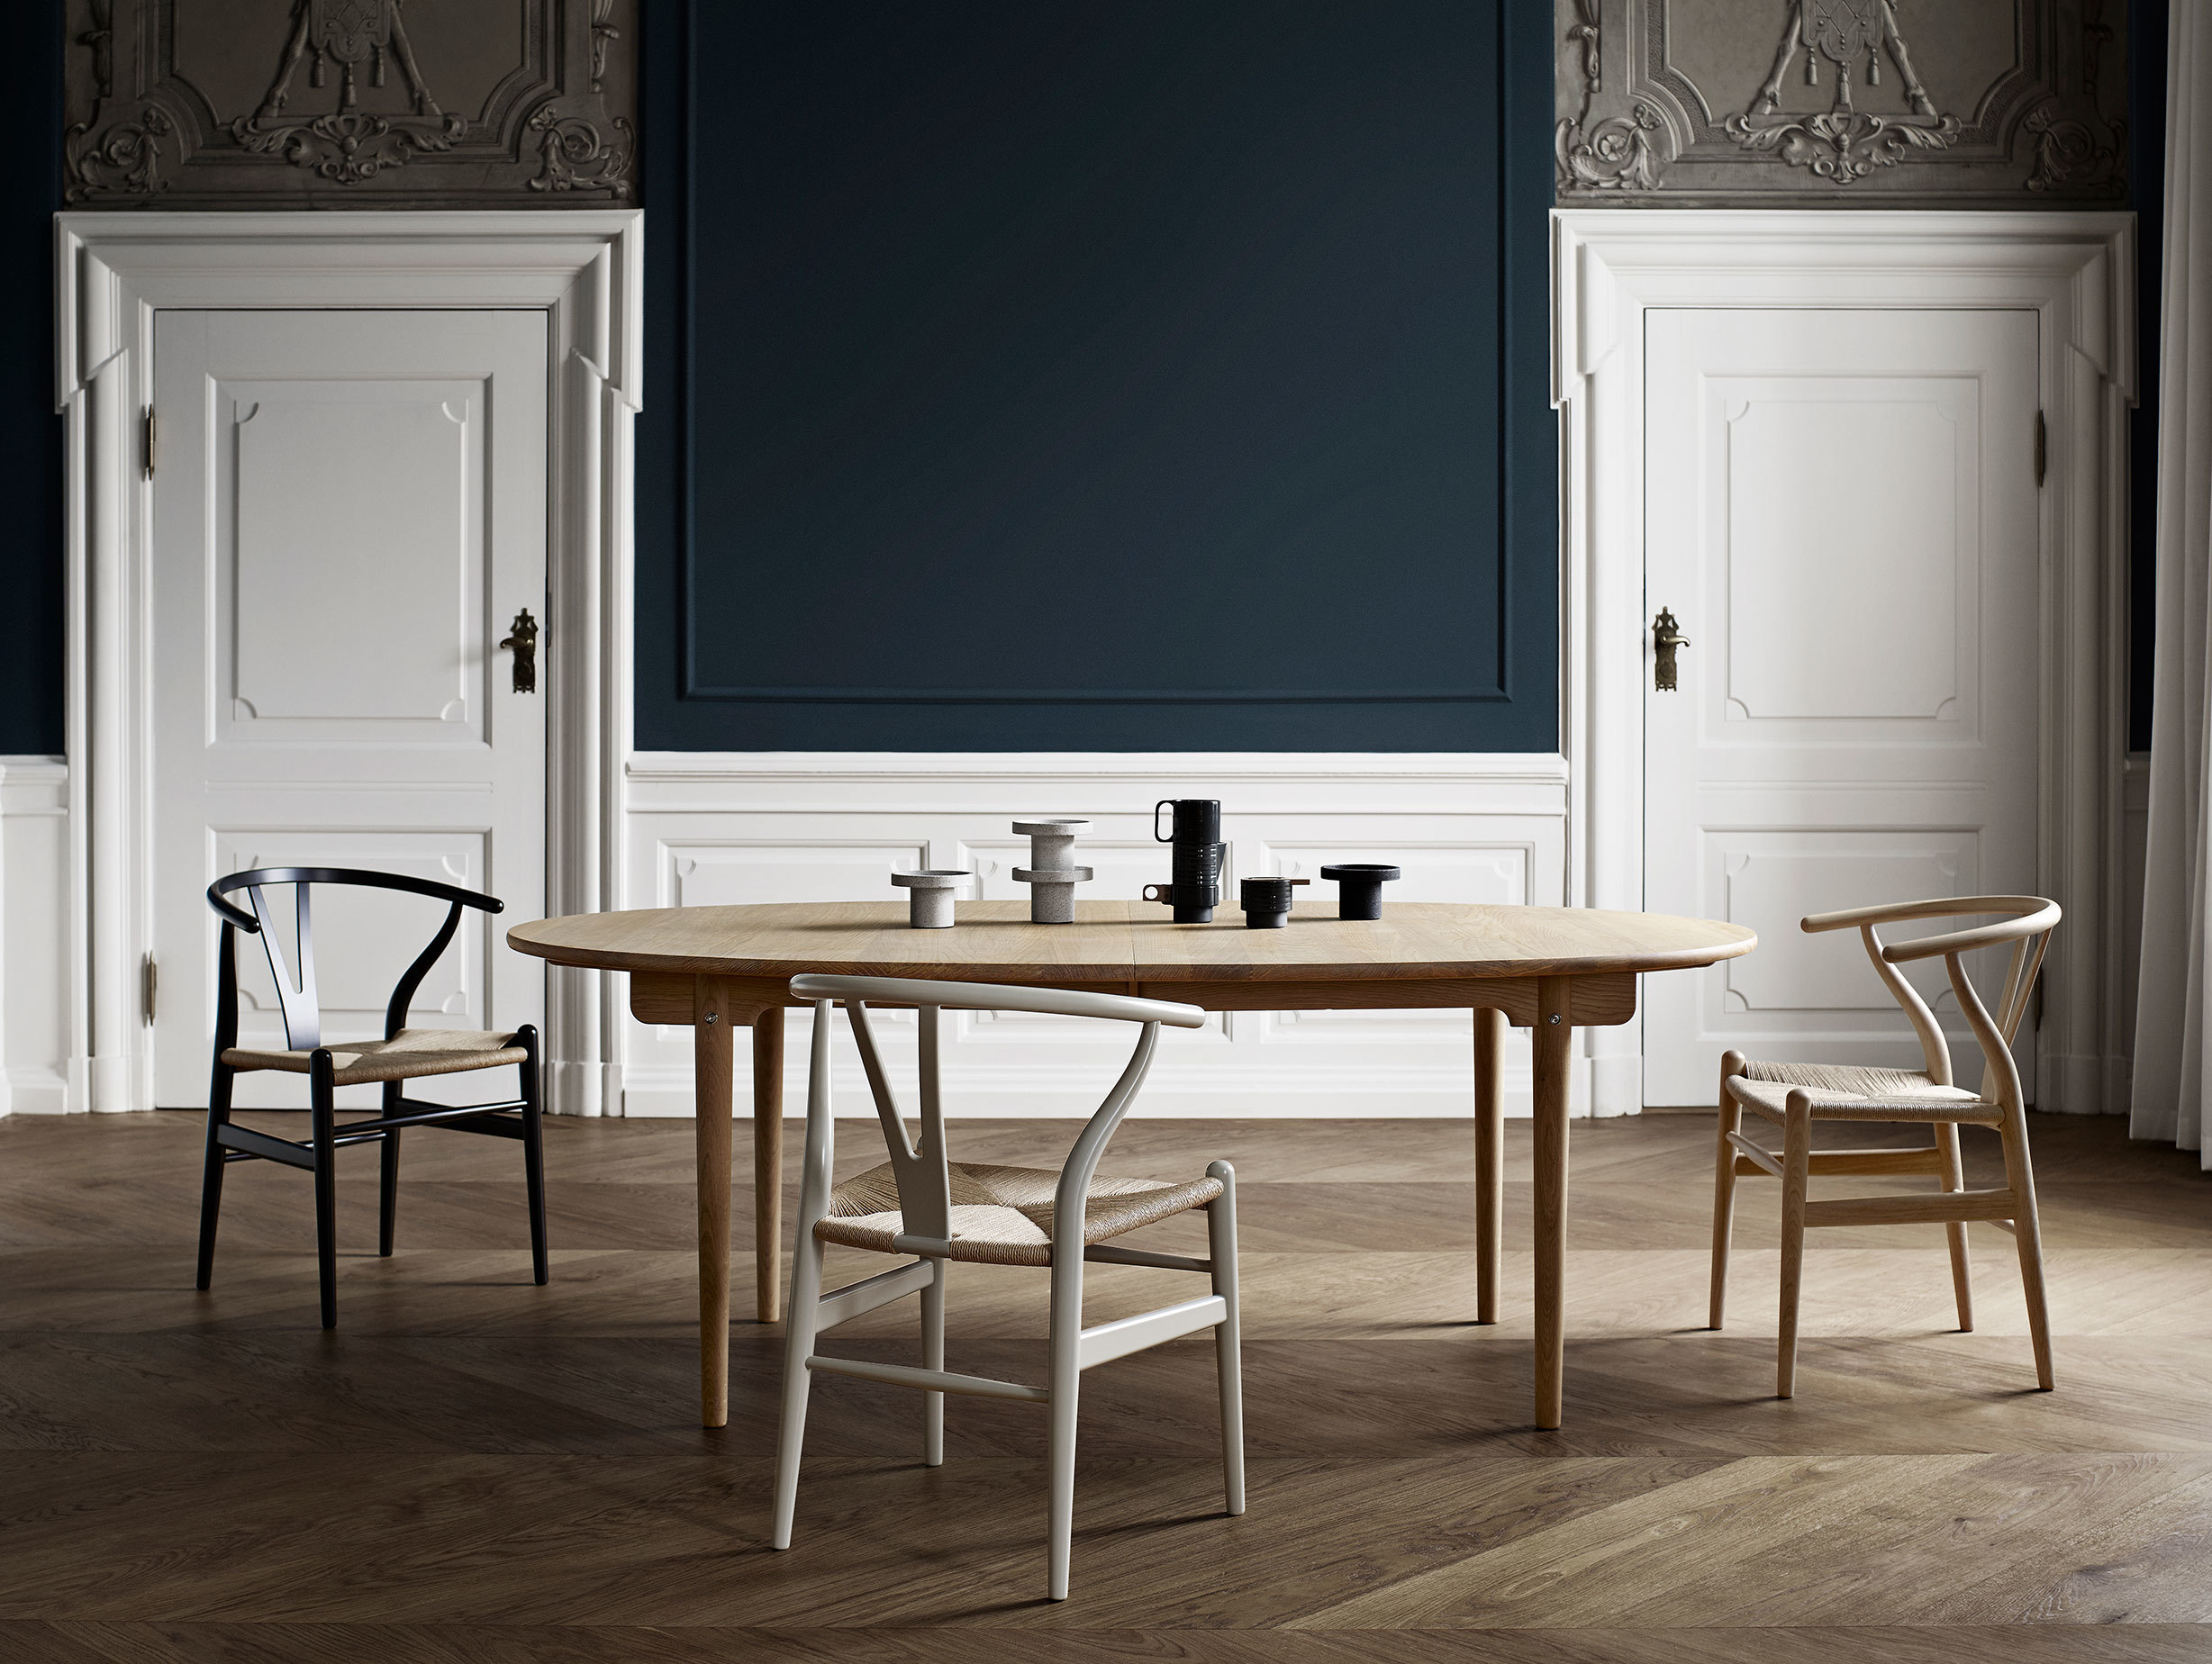 Carl Hansen Ch24 Wishbone Chair Hans Wegner 2